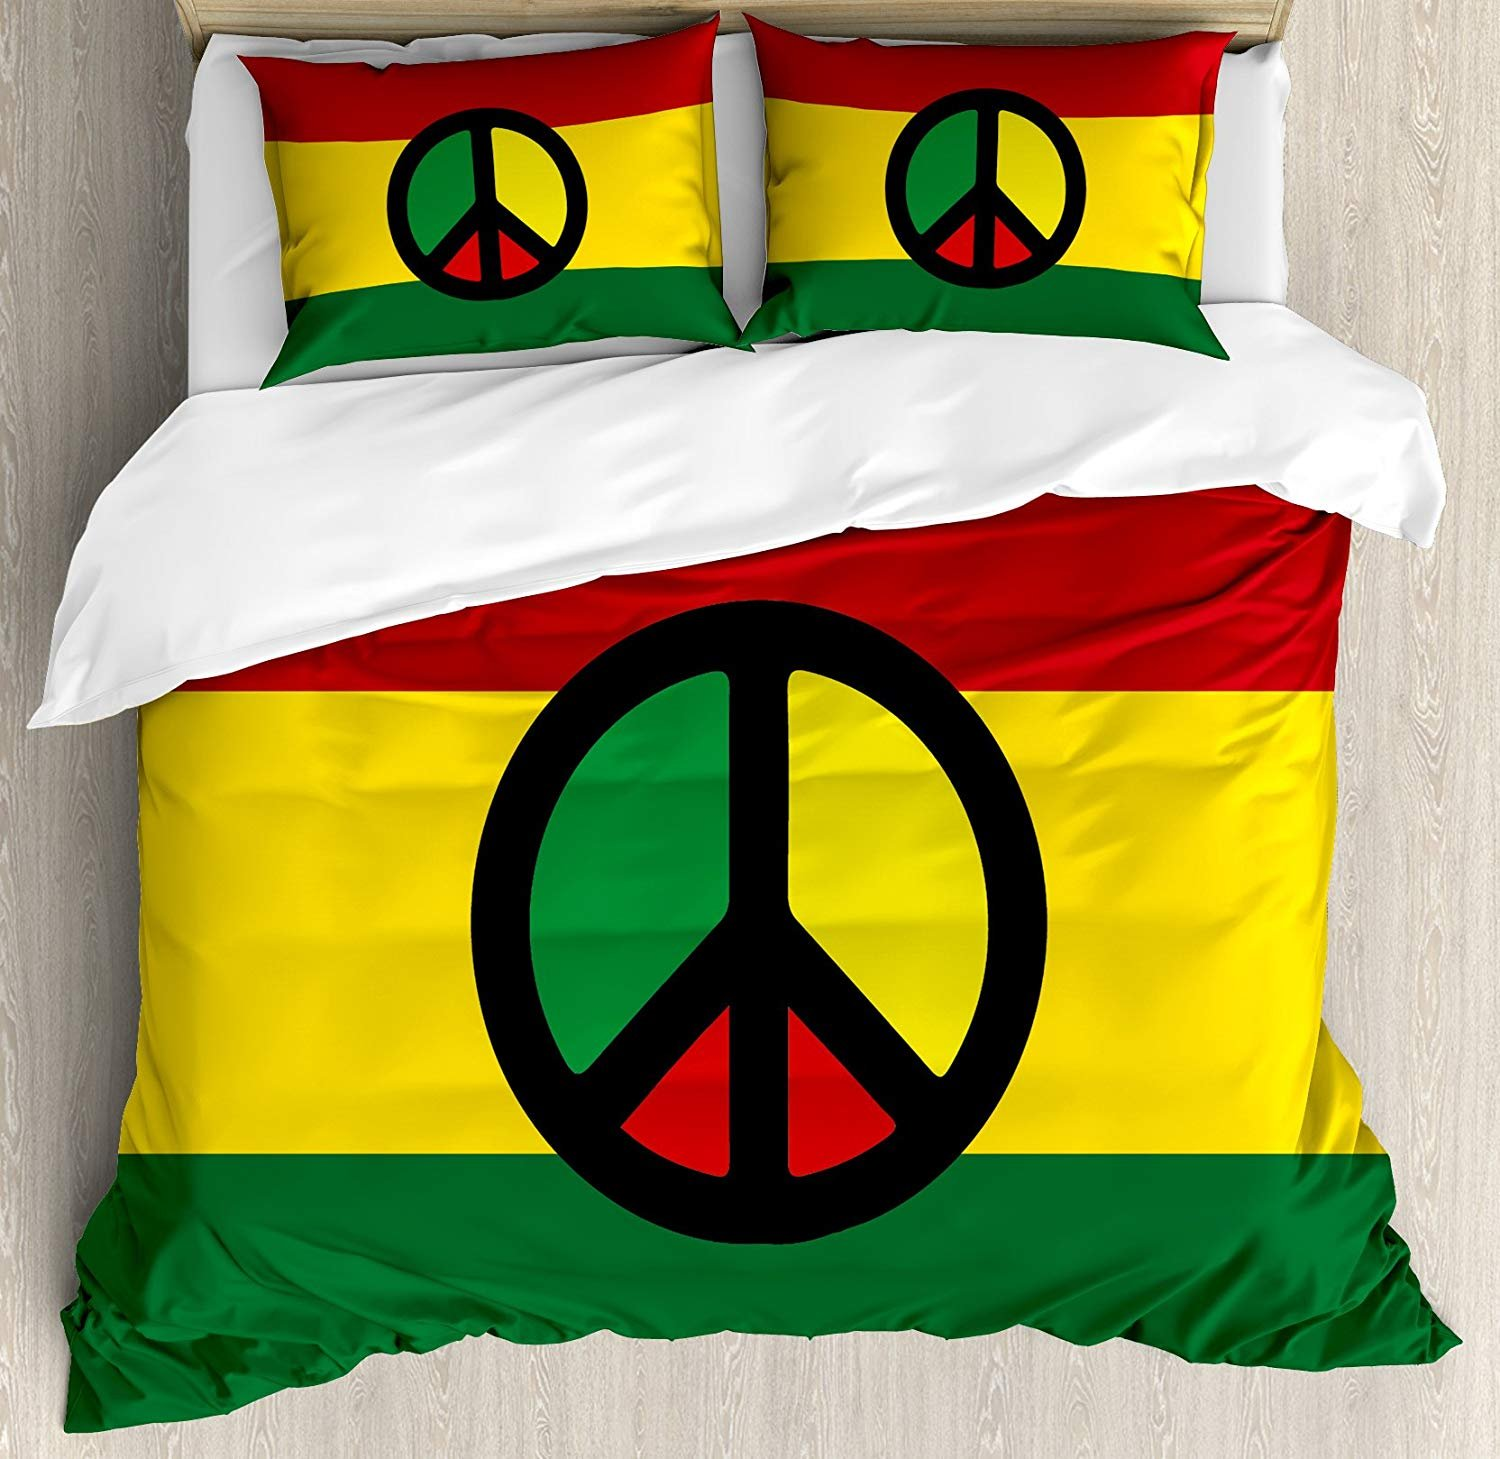 Anzona Full Size Jamaican 3 PCS Duvet Cover Set, Reggae Culture Peace Symbol Caribbean Country Flag Design Americas Rasta Culture, Bedding Set Bedspread for Children/Teens/Adults/Kids, Multicolor